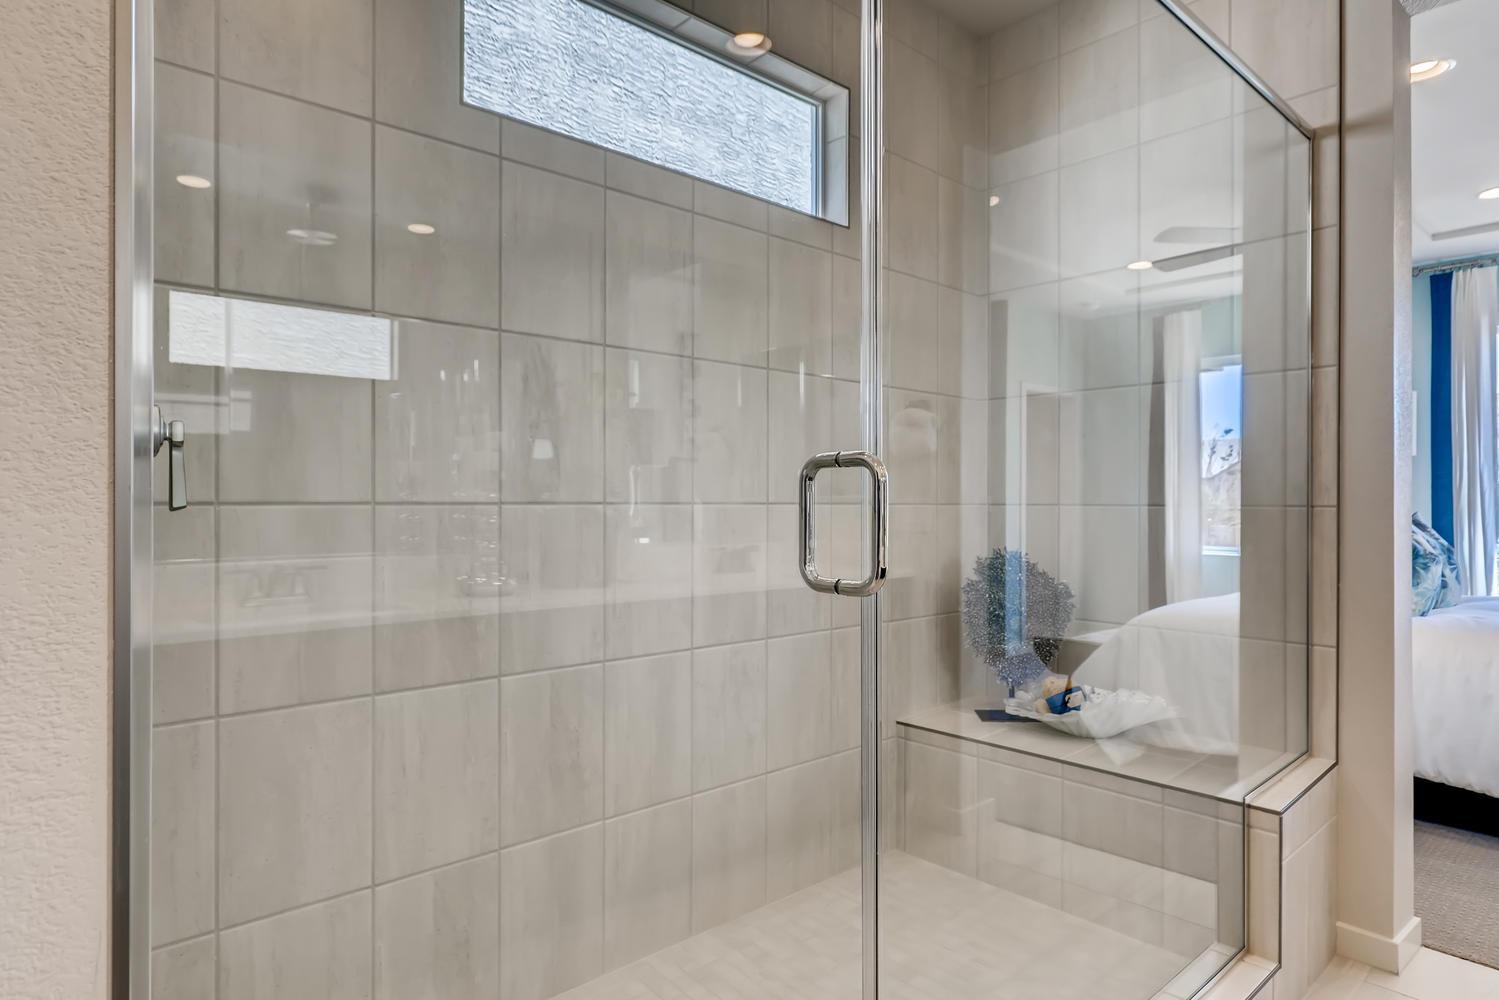 Bathroom featured in the 30 - Holly By Taylor Morrison in Las Vegas, NV